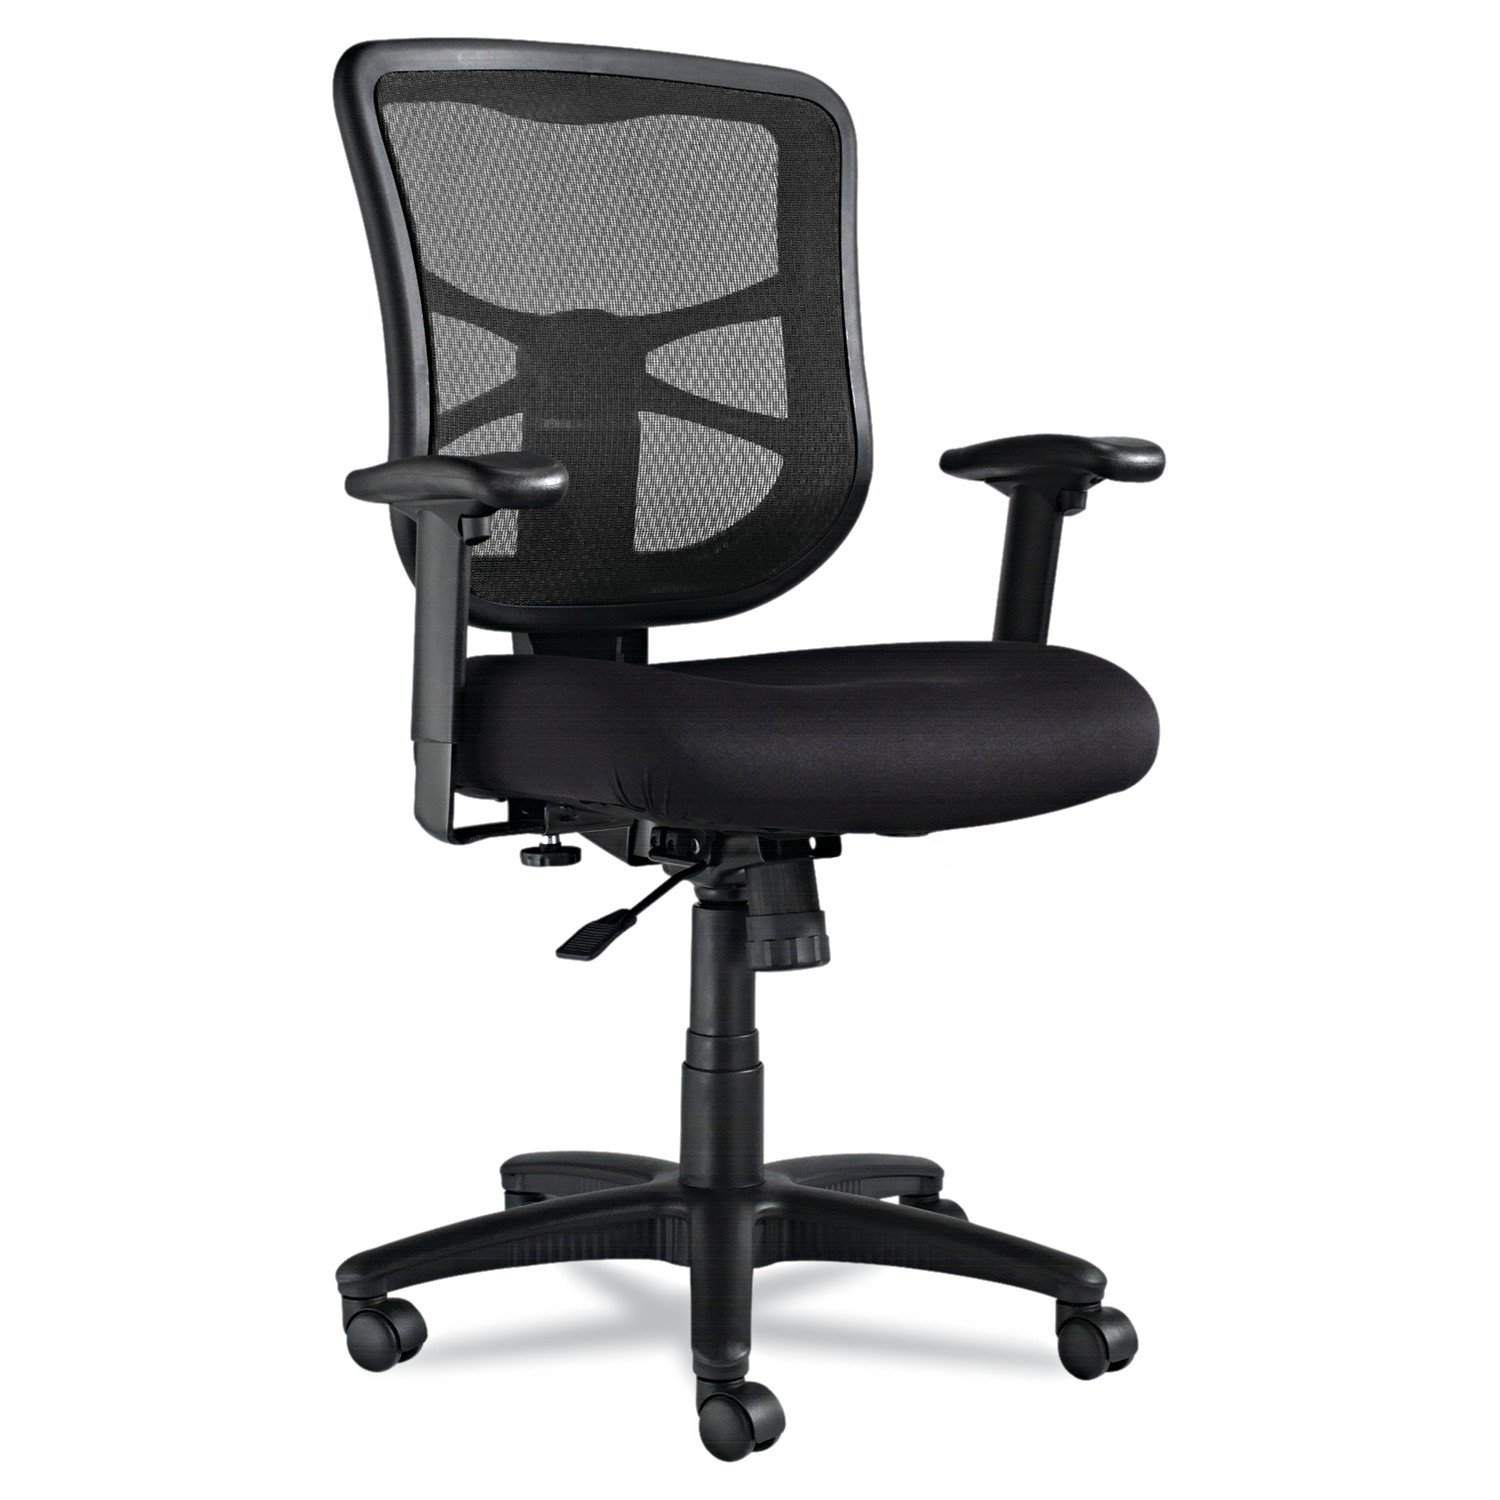 The Best Office Chair 3